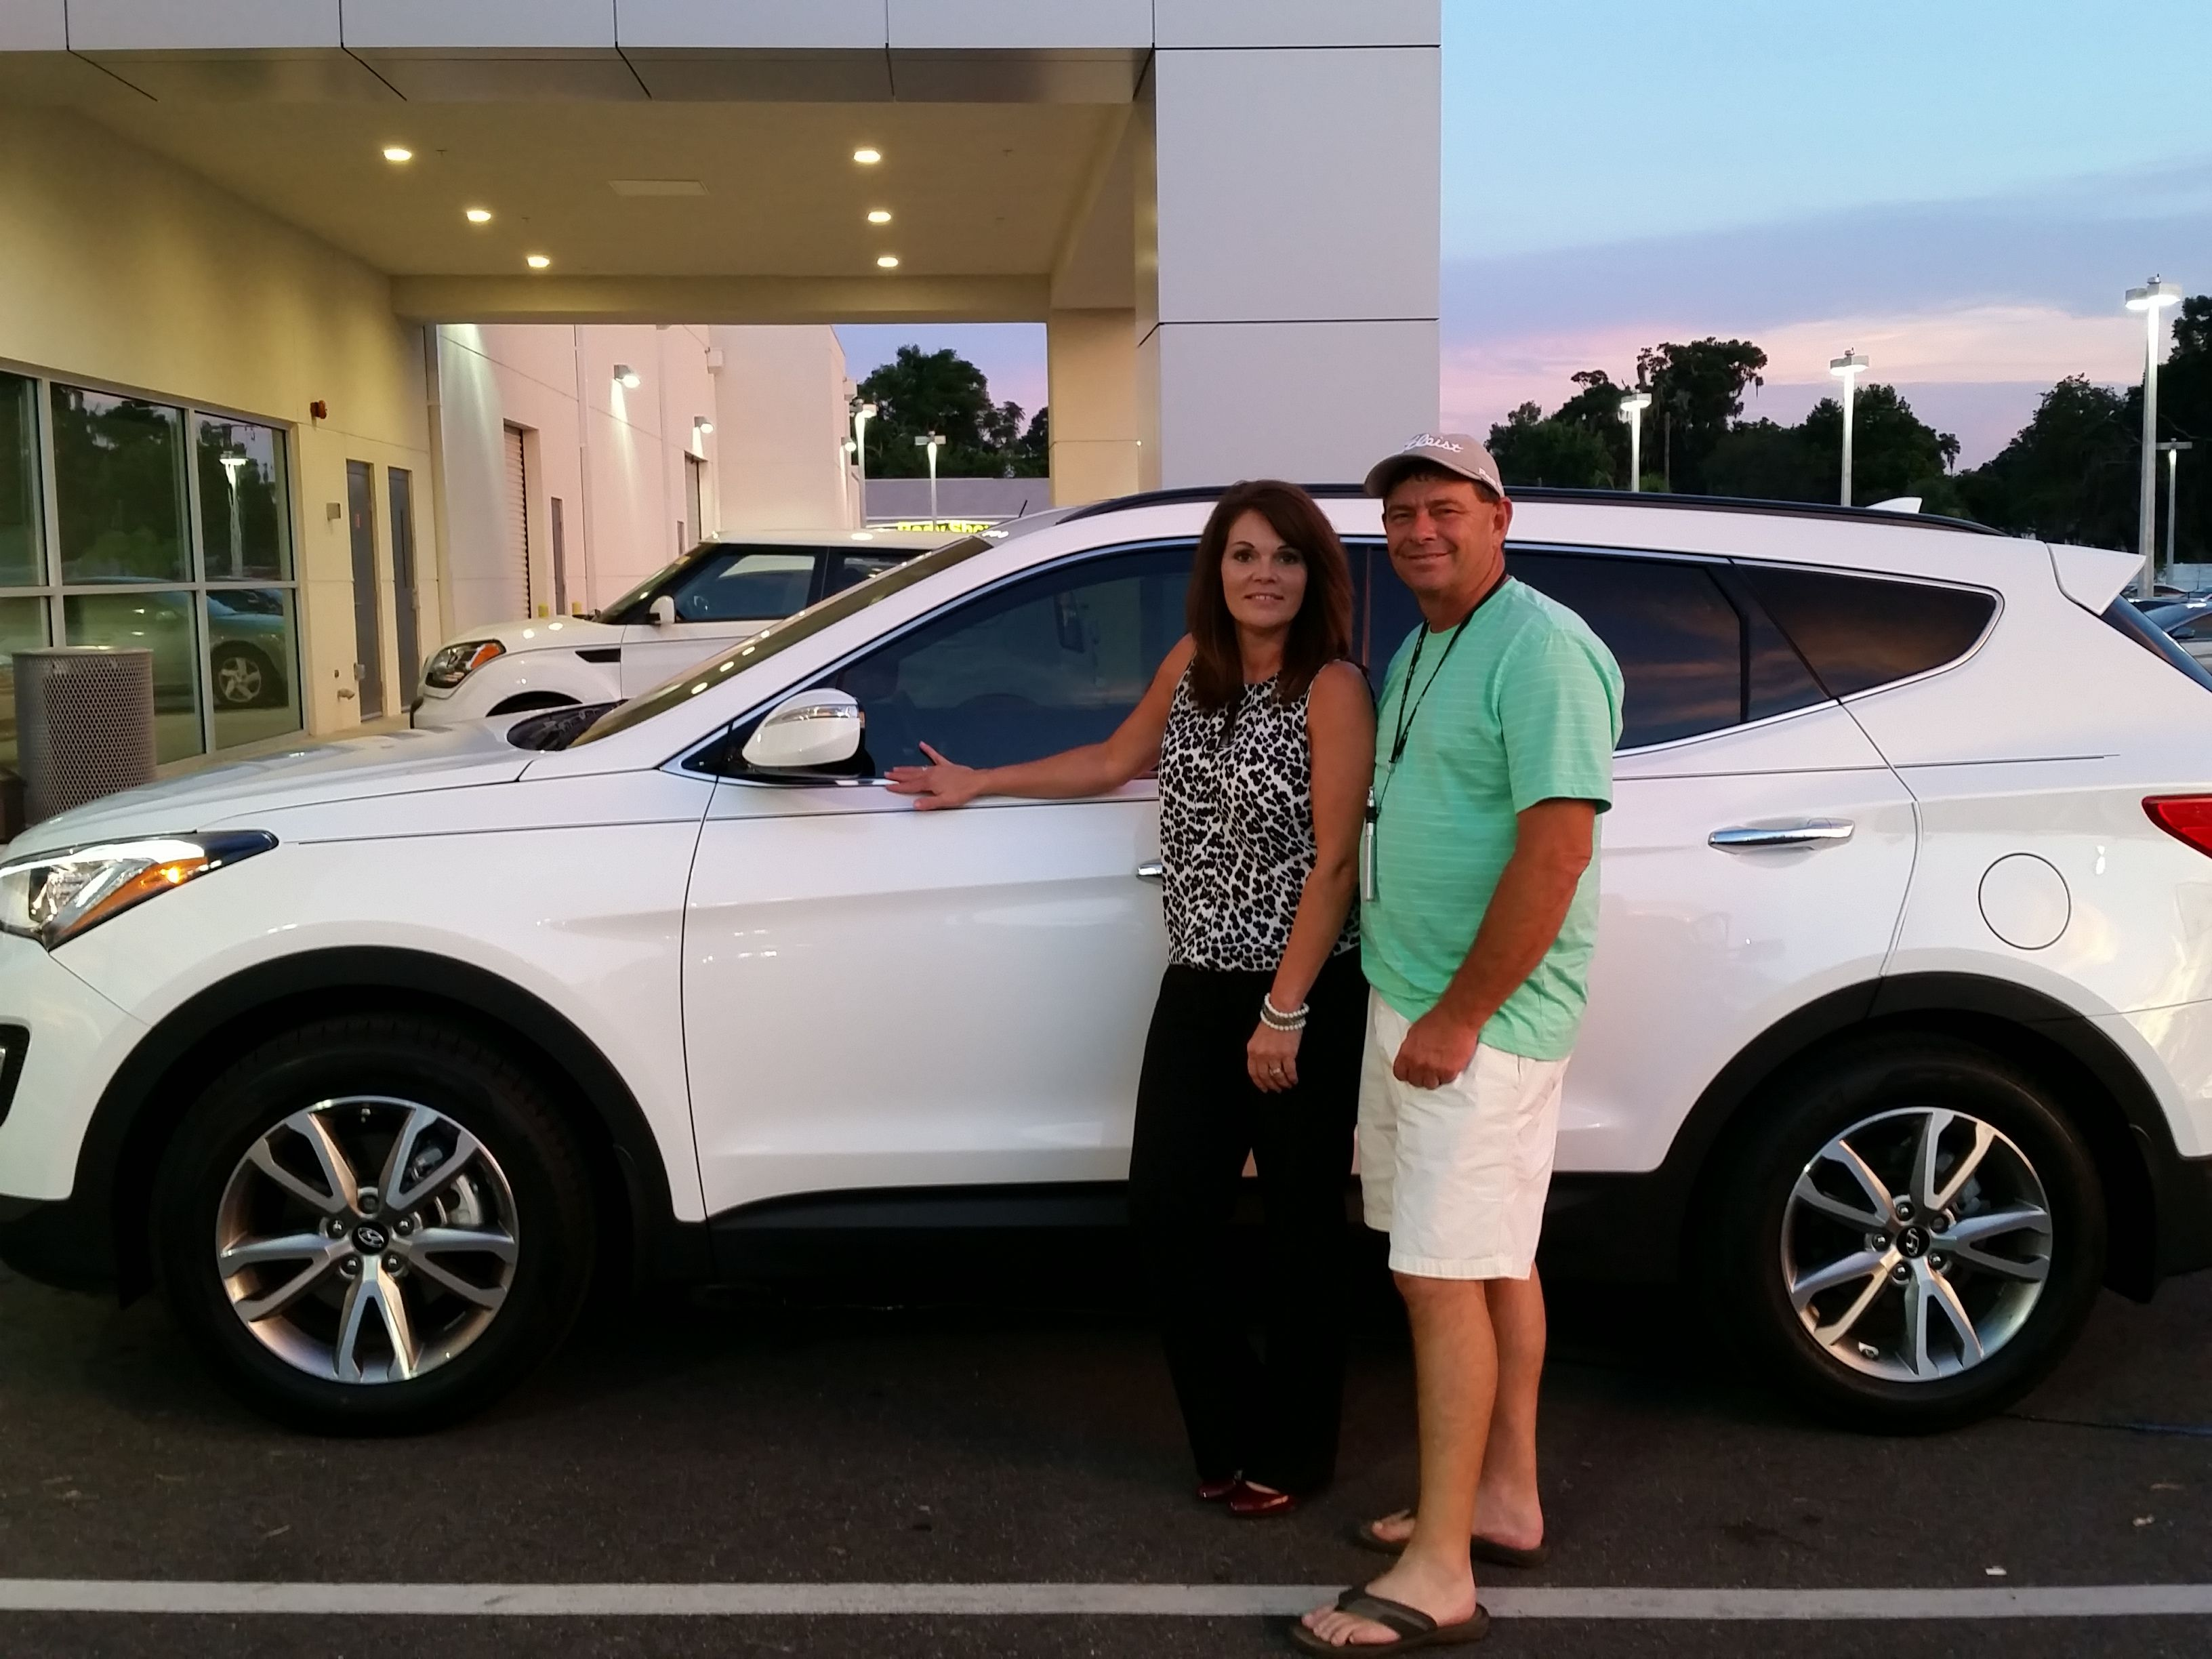 awesome of automall inspirational pa for acura used hyundai vehicles in ford certified montgomeryville or lakeland car sale dealerships